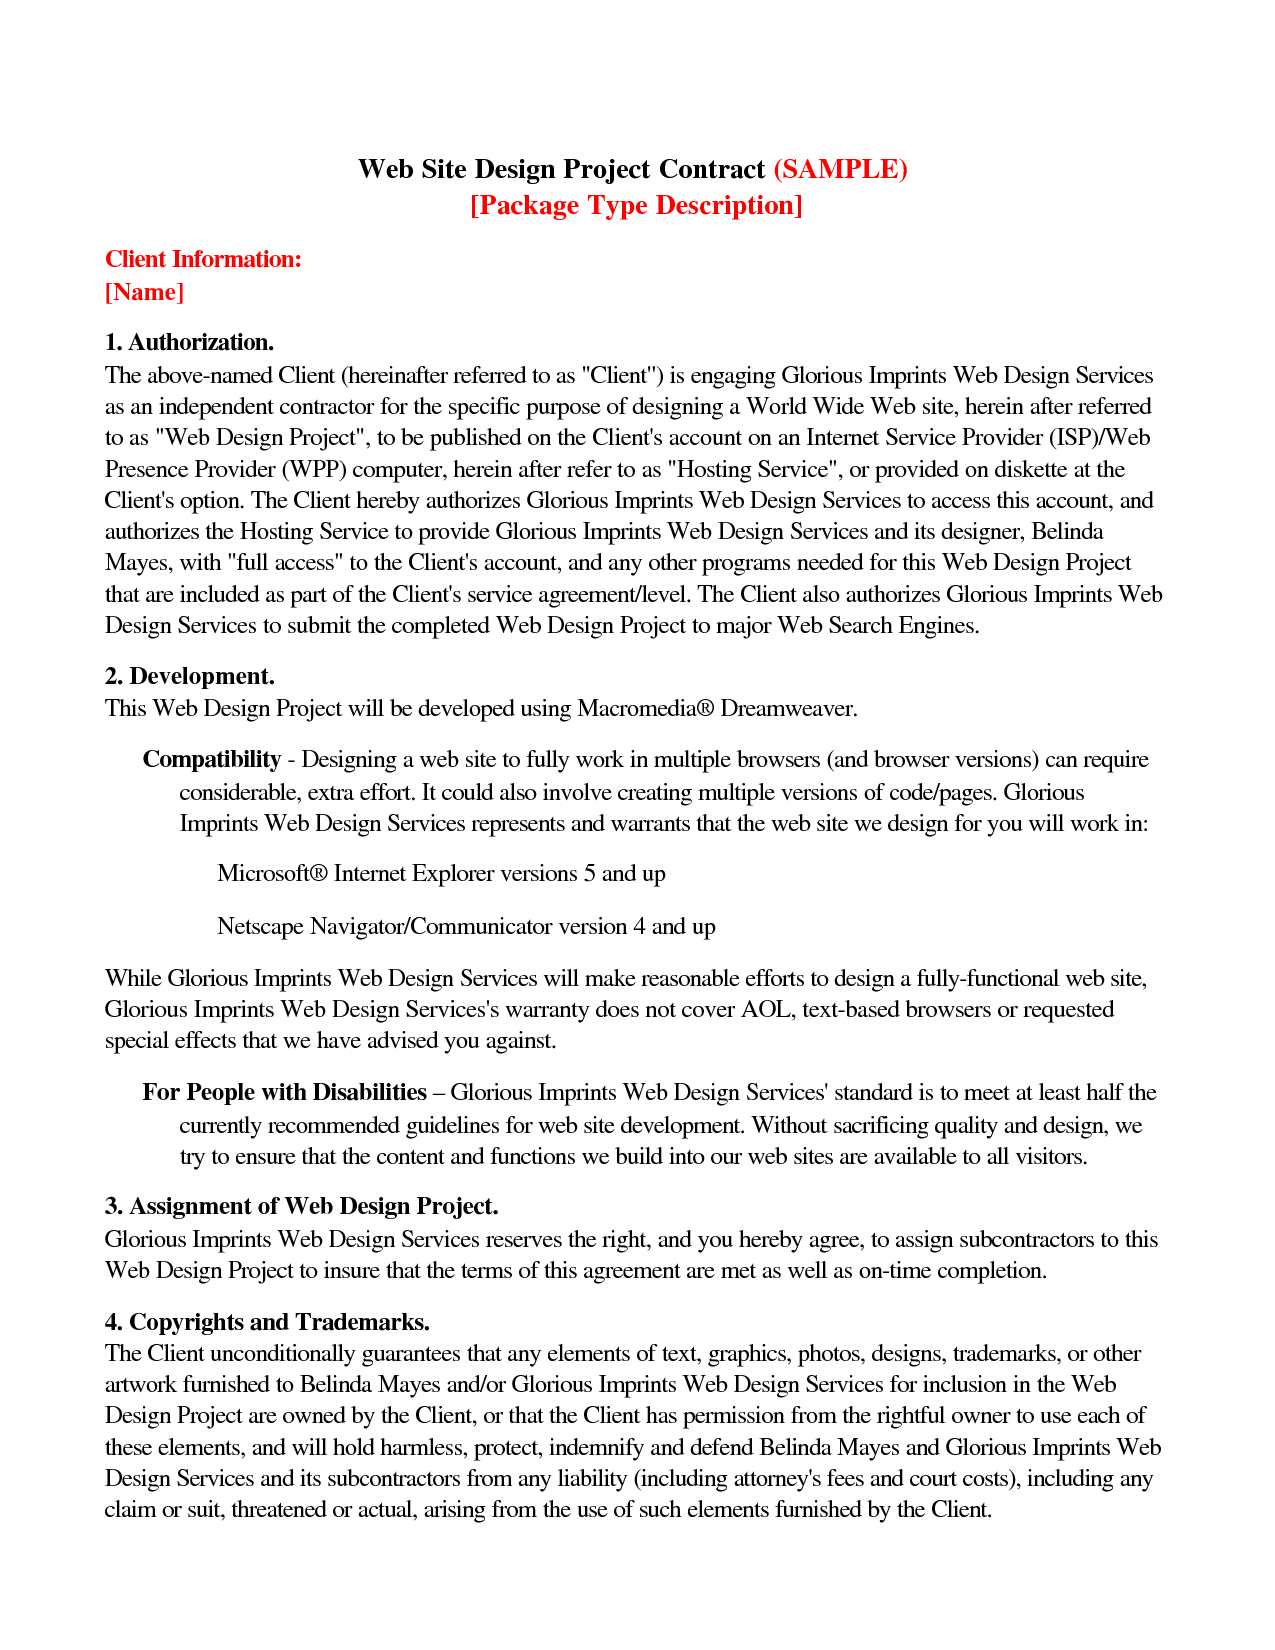 Web Design Contract Agreement Free Printable Documents